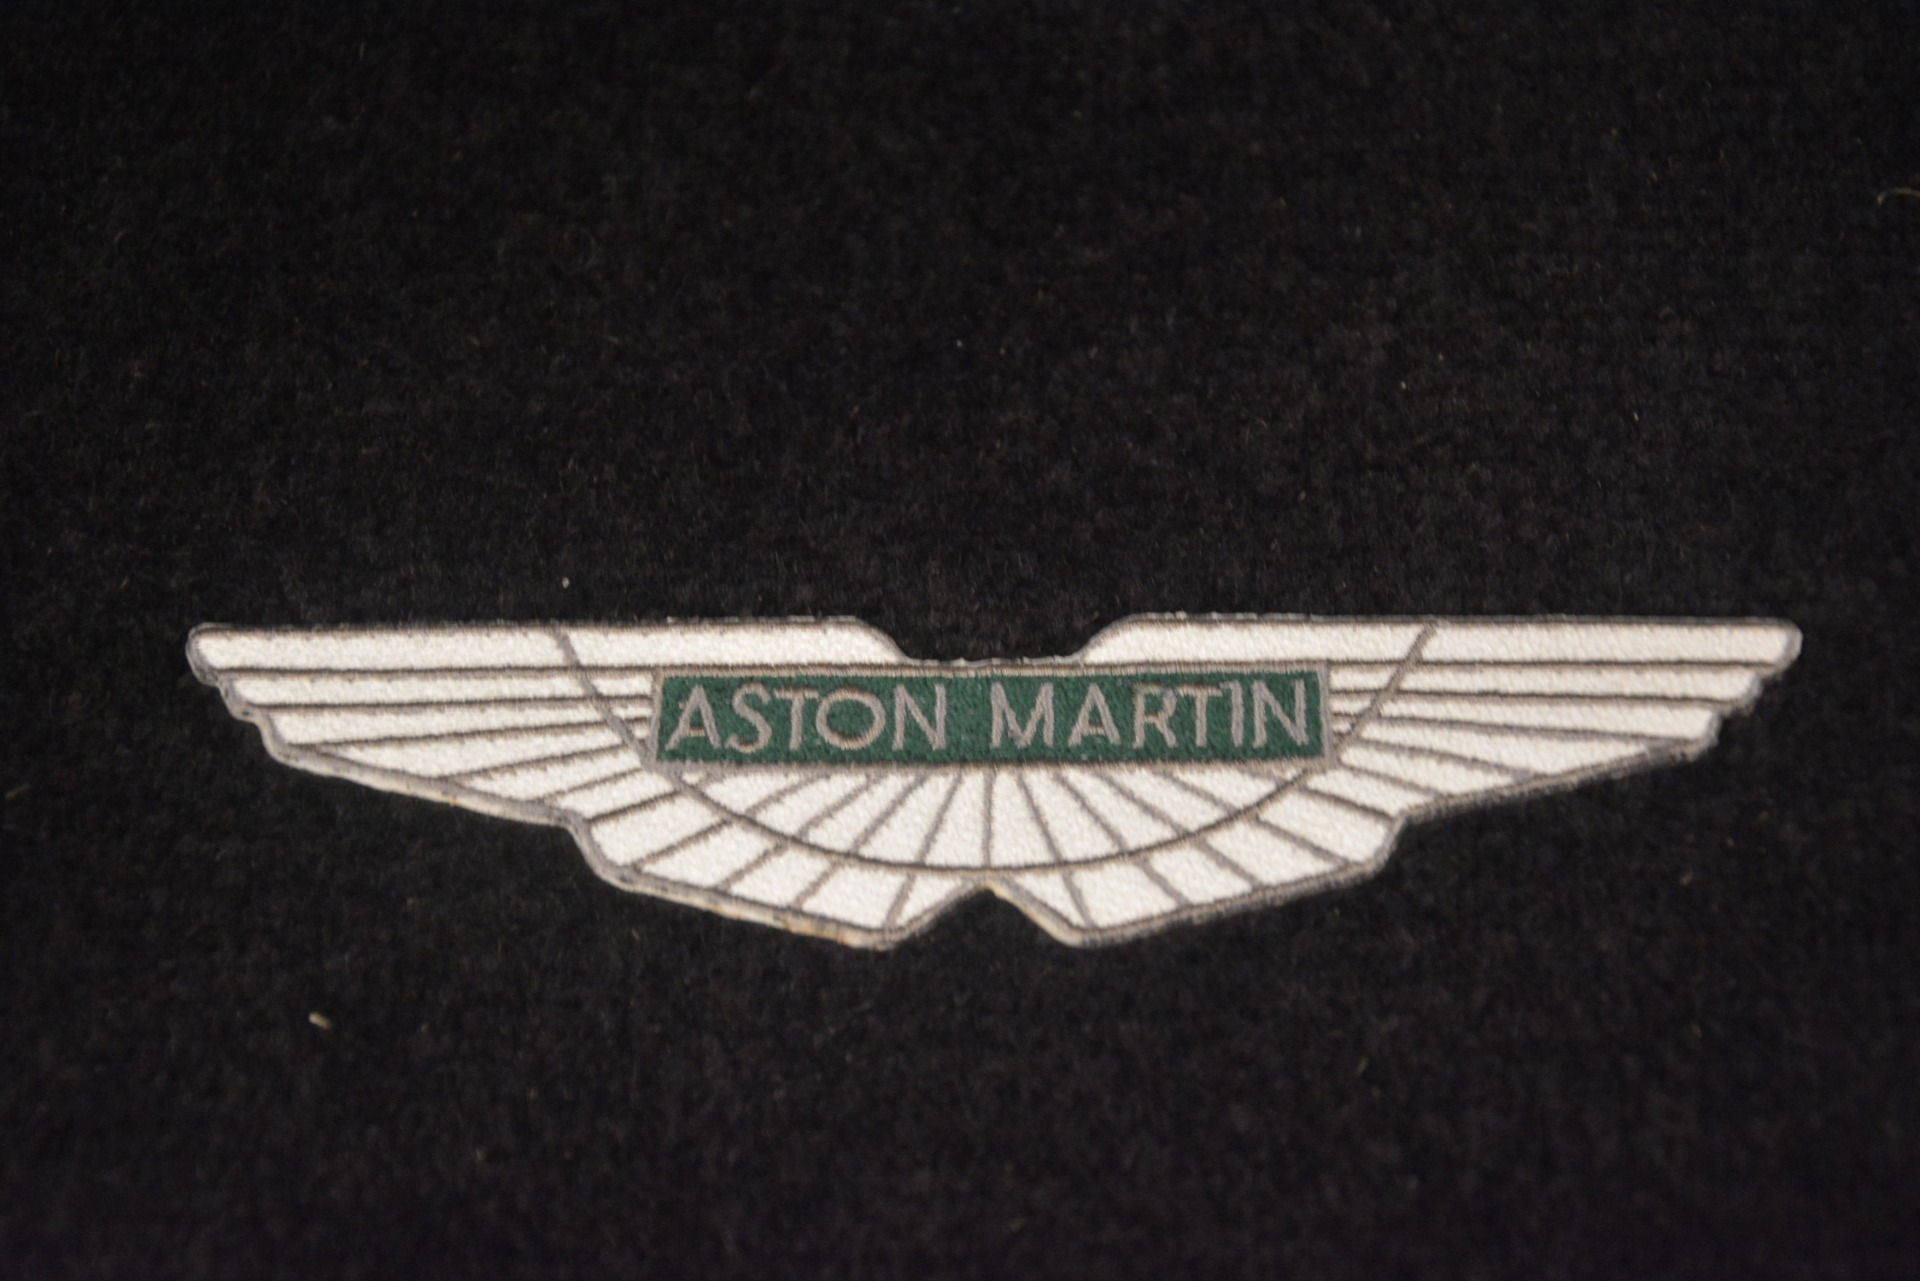 Used 2004 Aston Martin V12 Vanquish  For Sale In Westport, CT 3160_p23